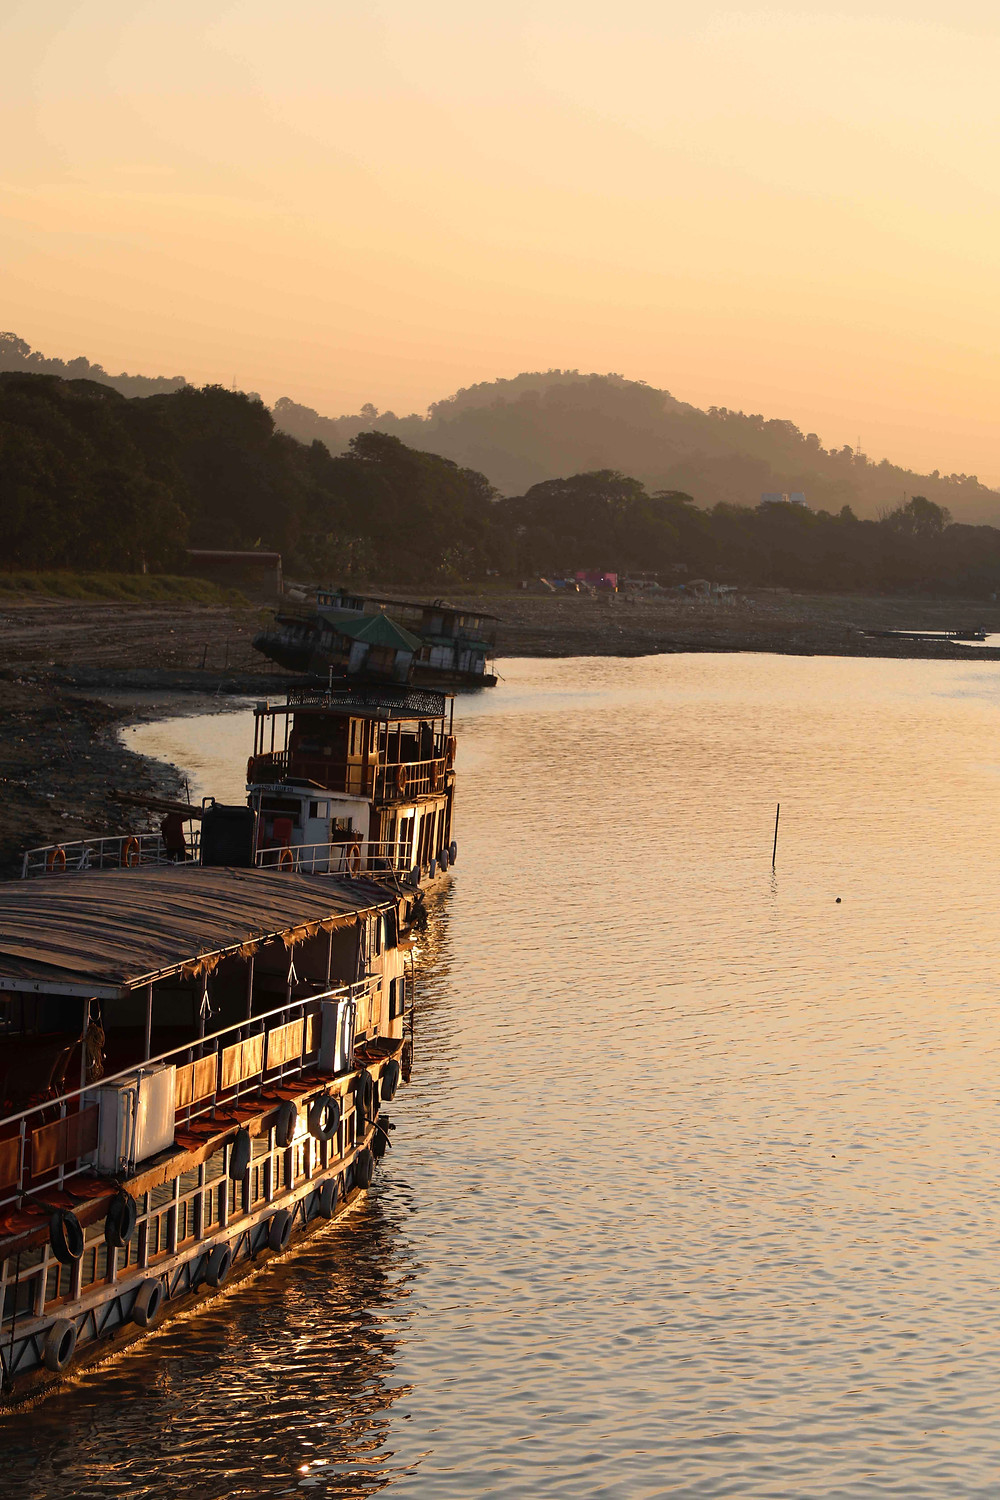 Brahmaputra river has been a witness to the glorious history and culture of Assam for centuries